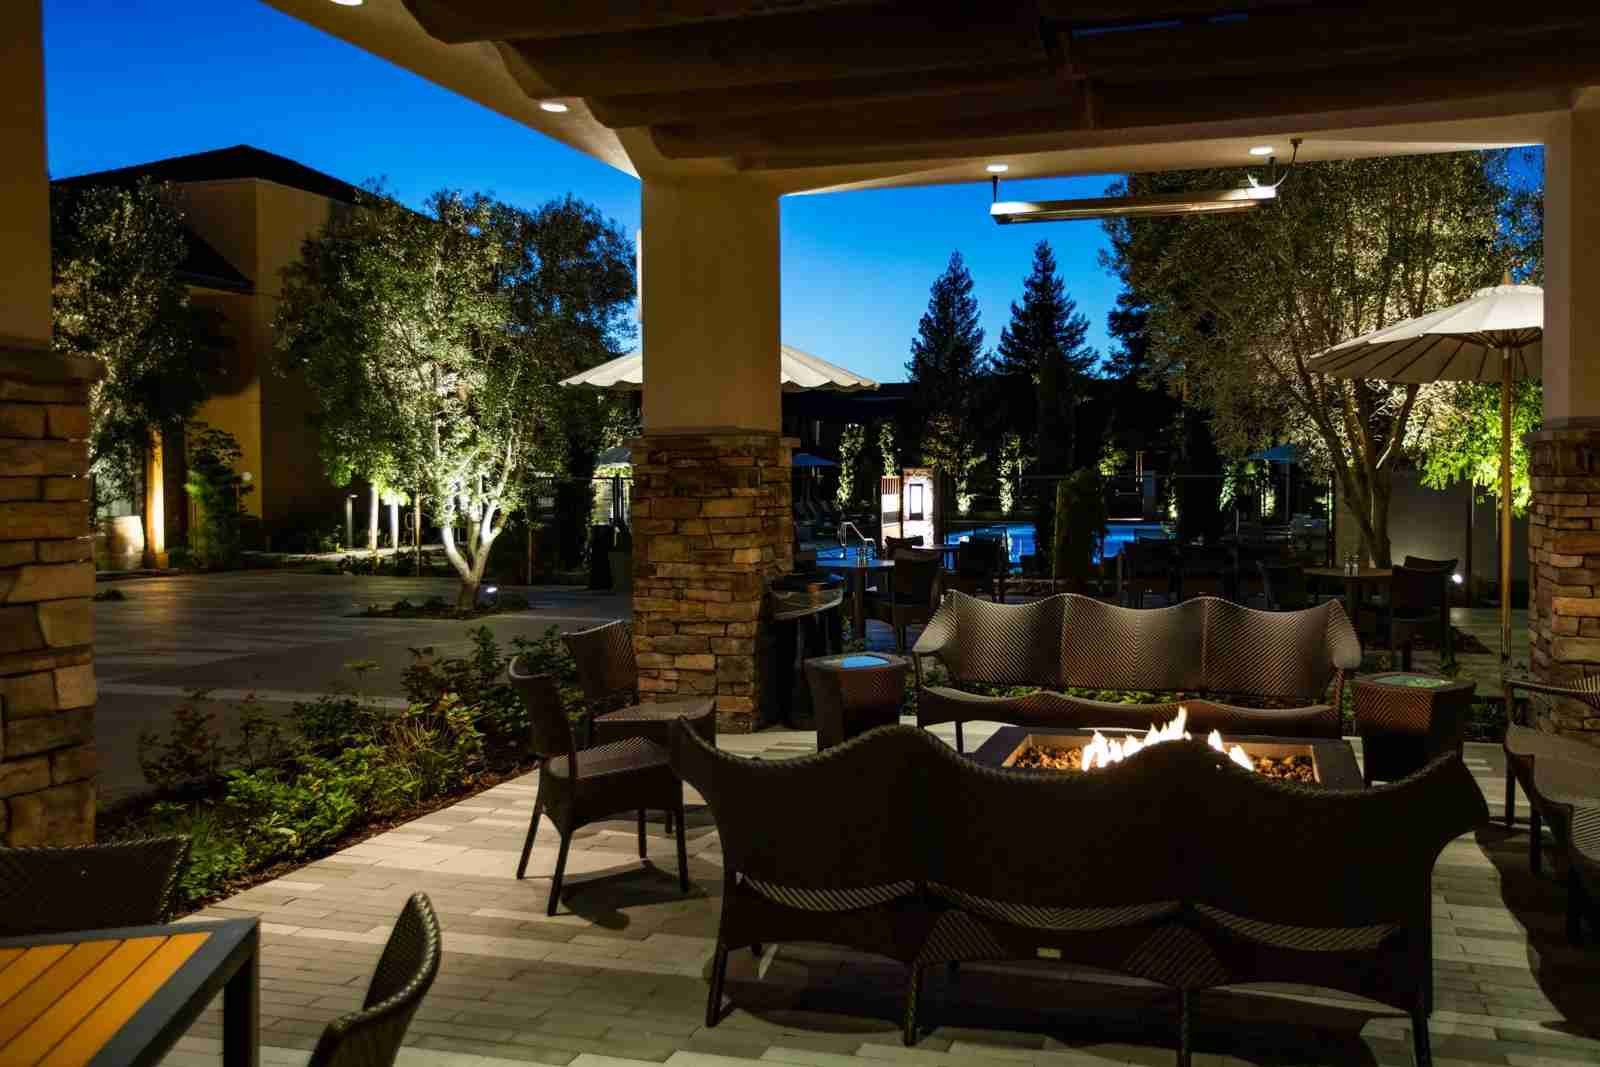 The Napa Valley Marriott Hotel and Spa. (Photo courtesy of Marriott)